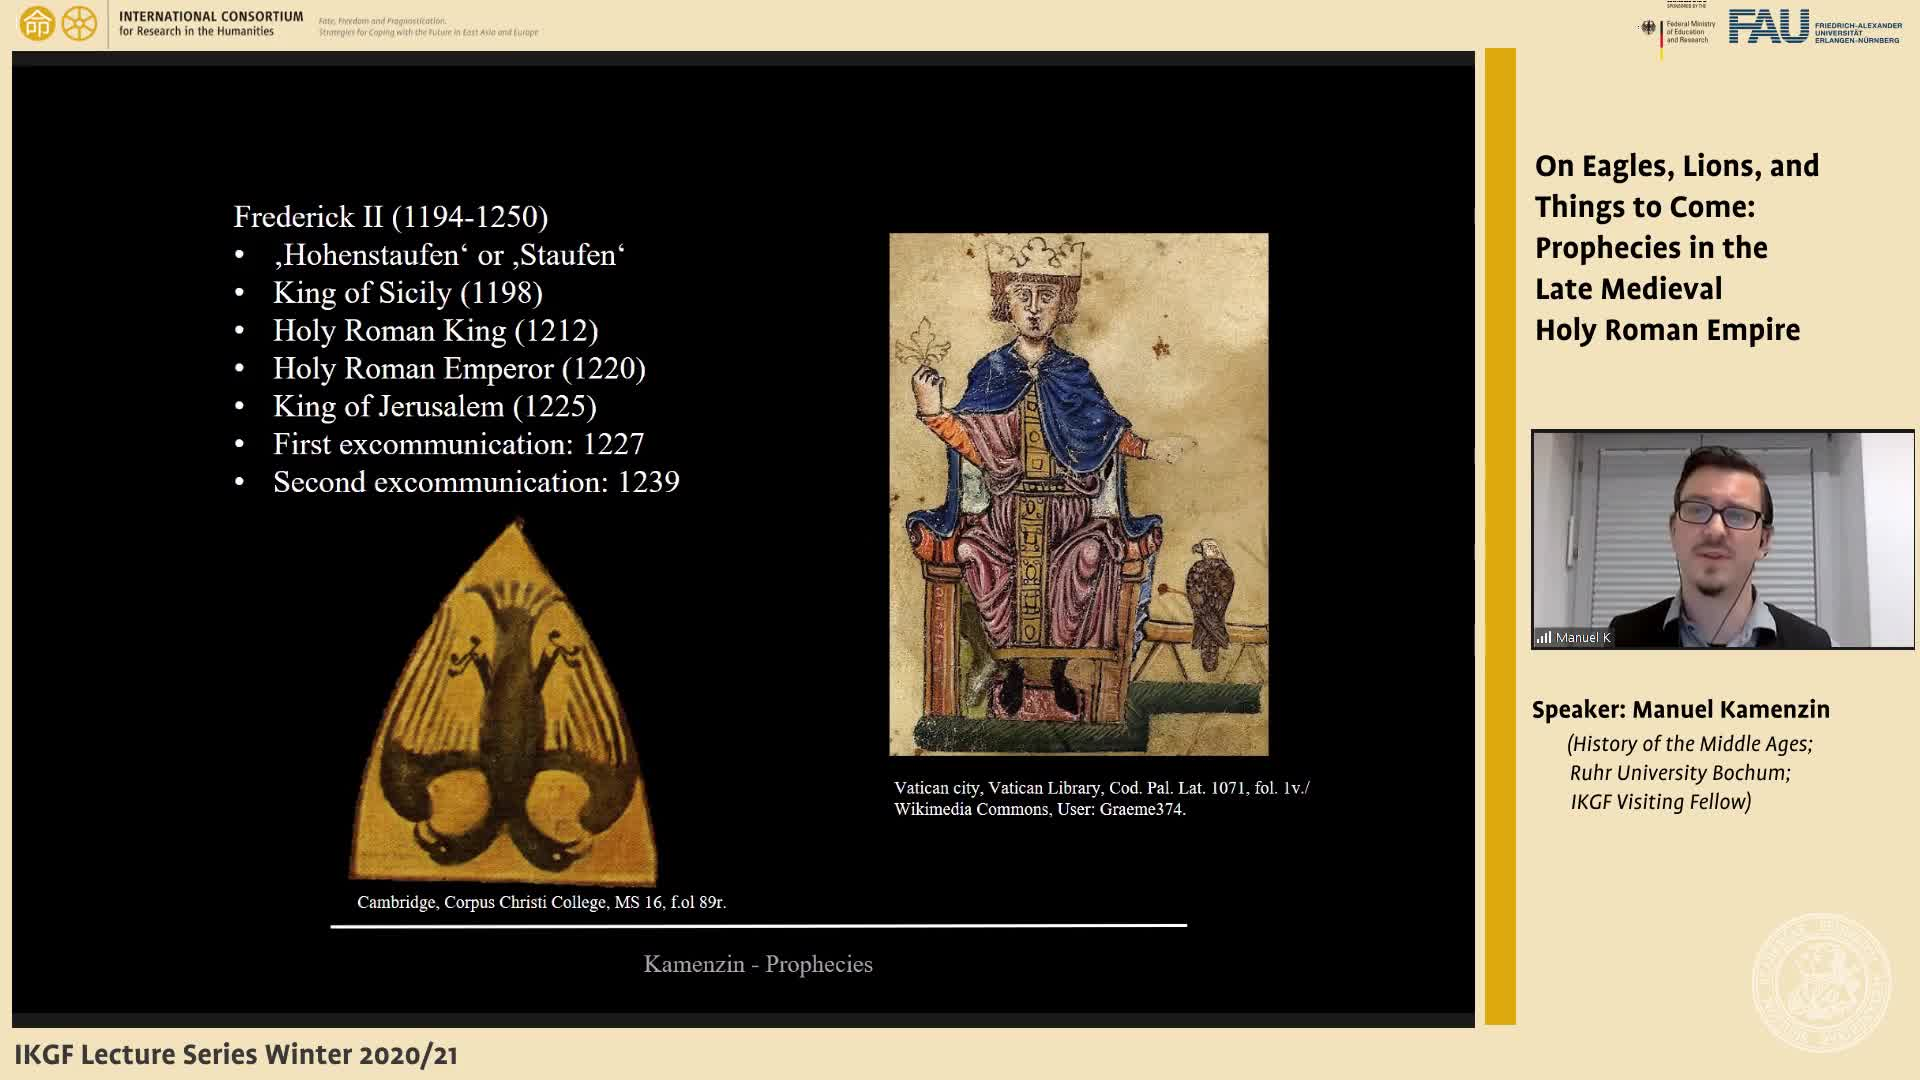 On Eagles, Lions, and Things to Come: Prophecies in the Late Medieval Holy Roman Empire preview image